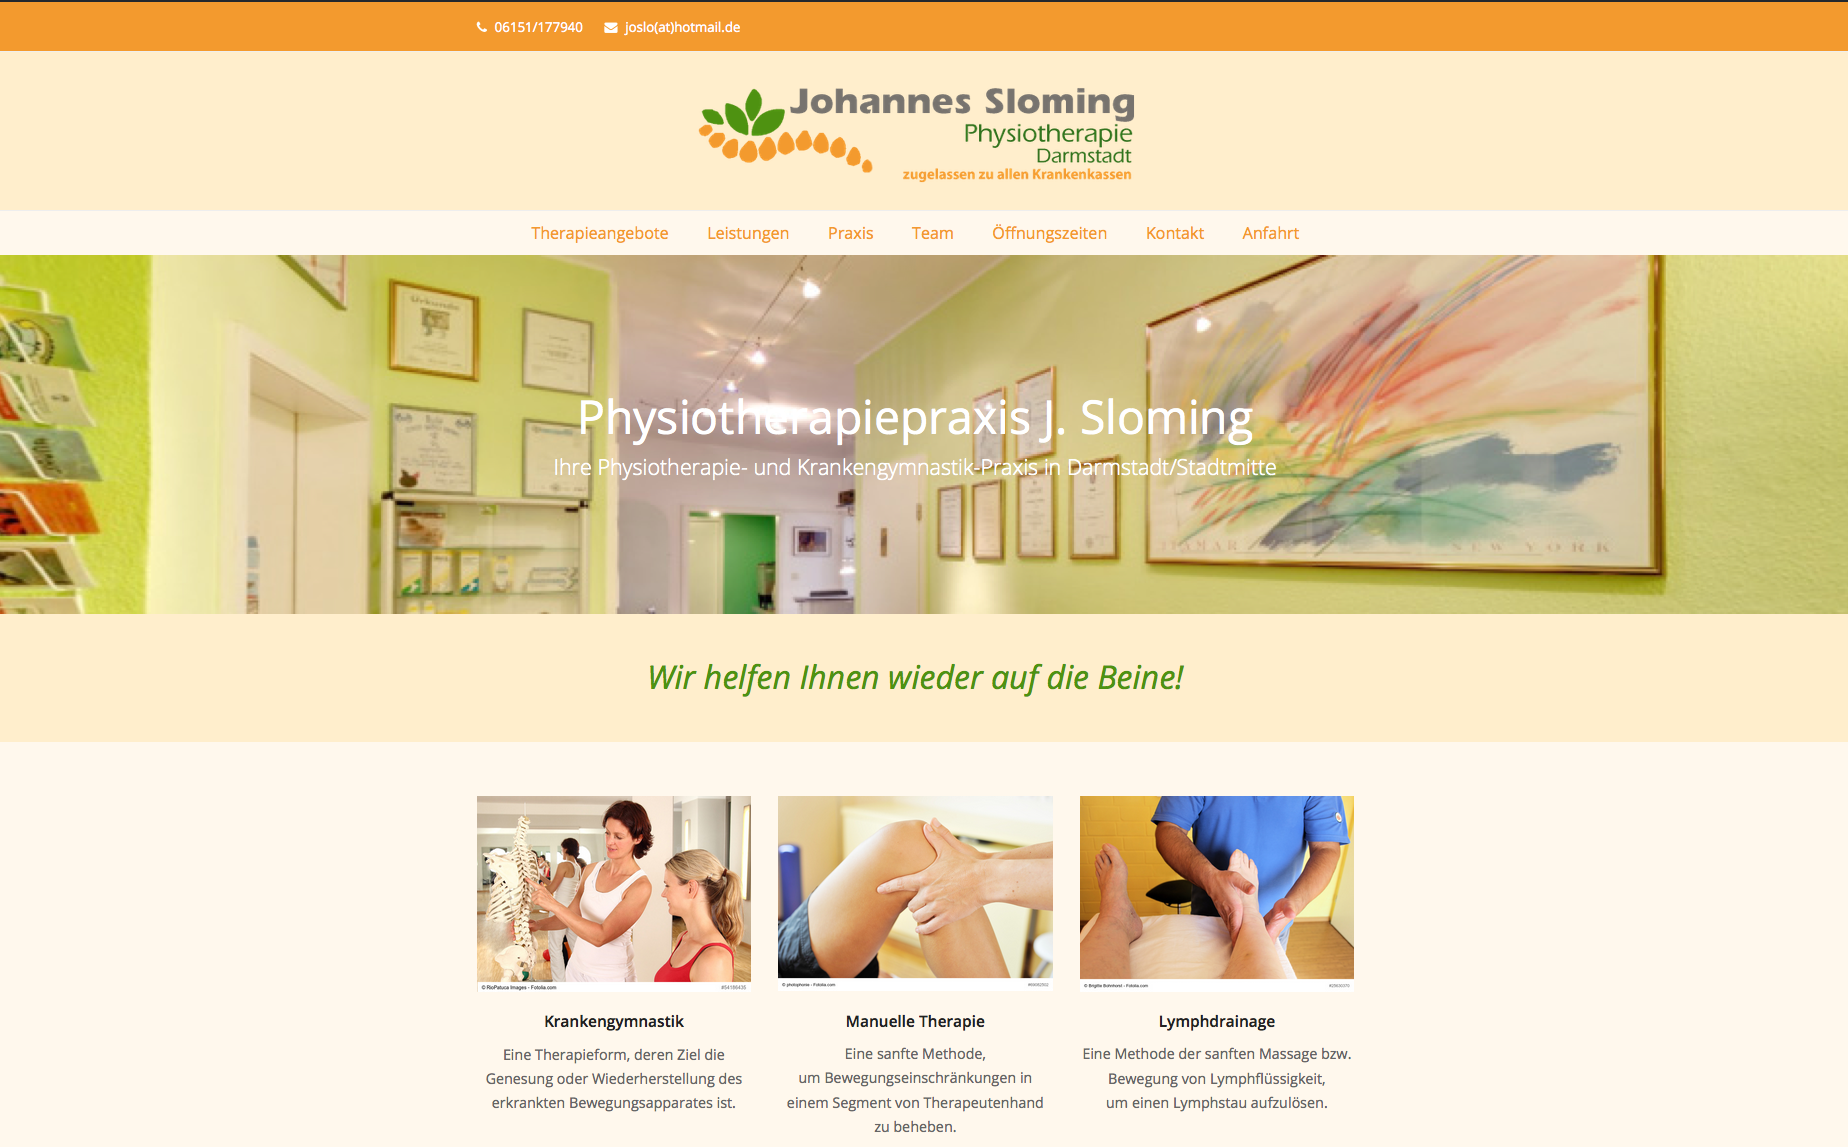 Physiotherapiepraxis J. Sloming